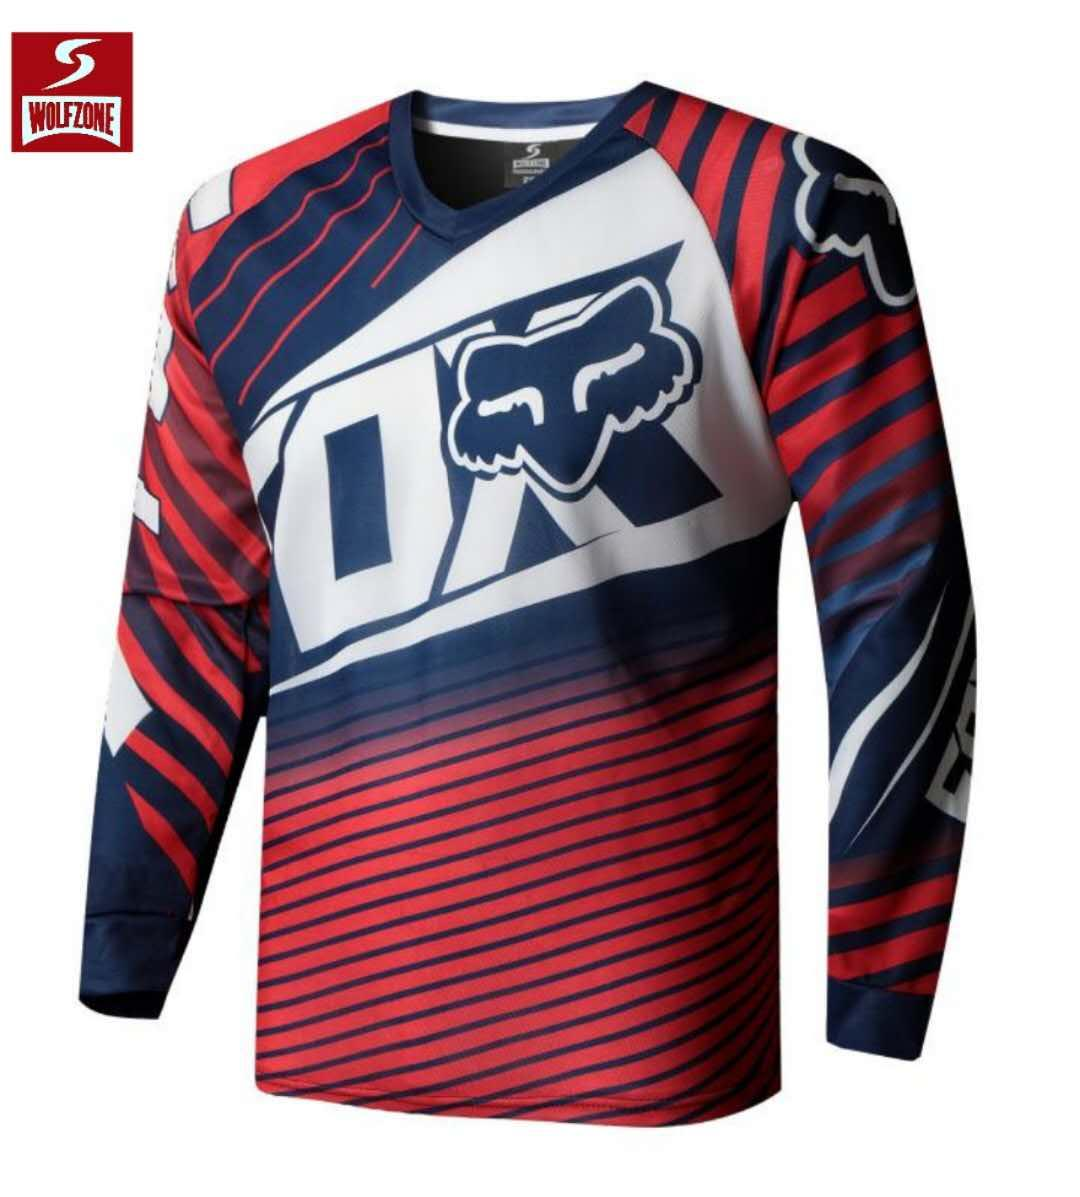 Wolf Zone Spandex Fox Longsleeve Men s Sportswear Quick DryFortress Cycling  Mountain Bike Motocross Motorcycle MTB a89df13d6